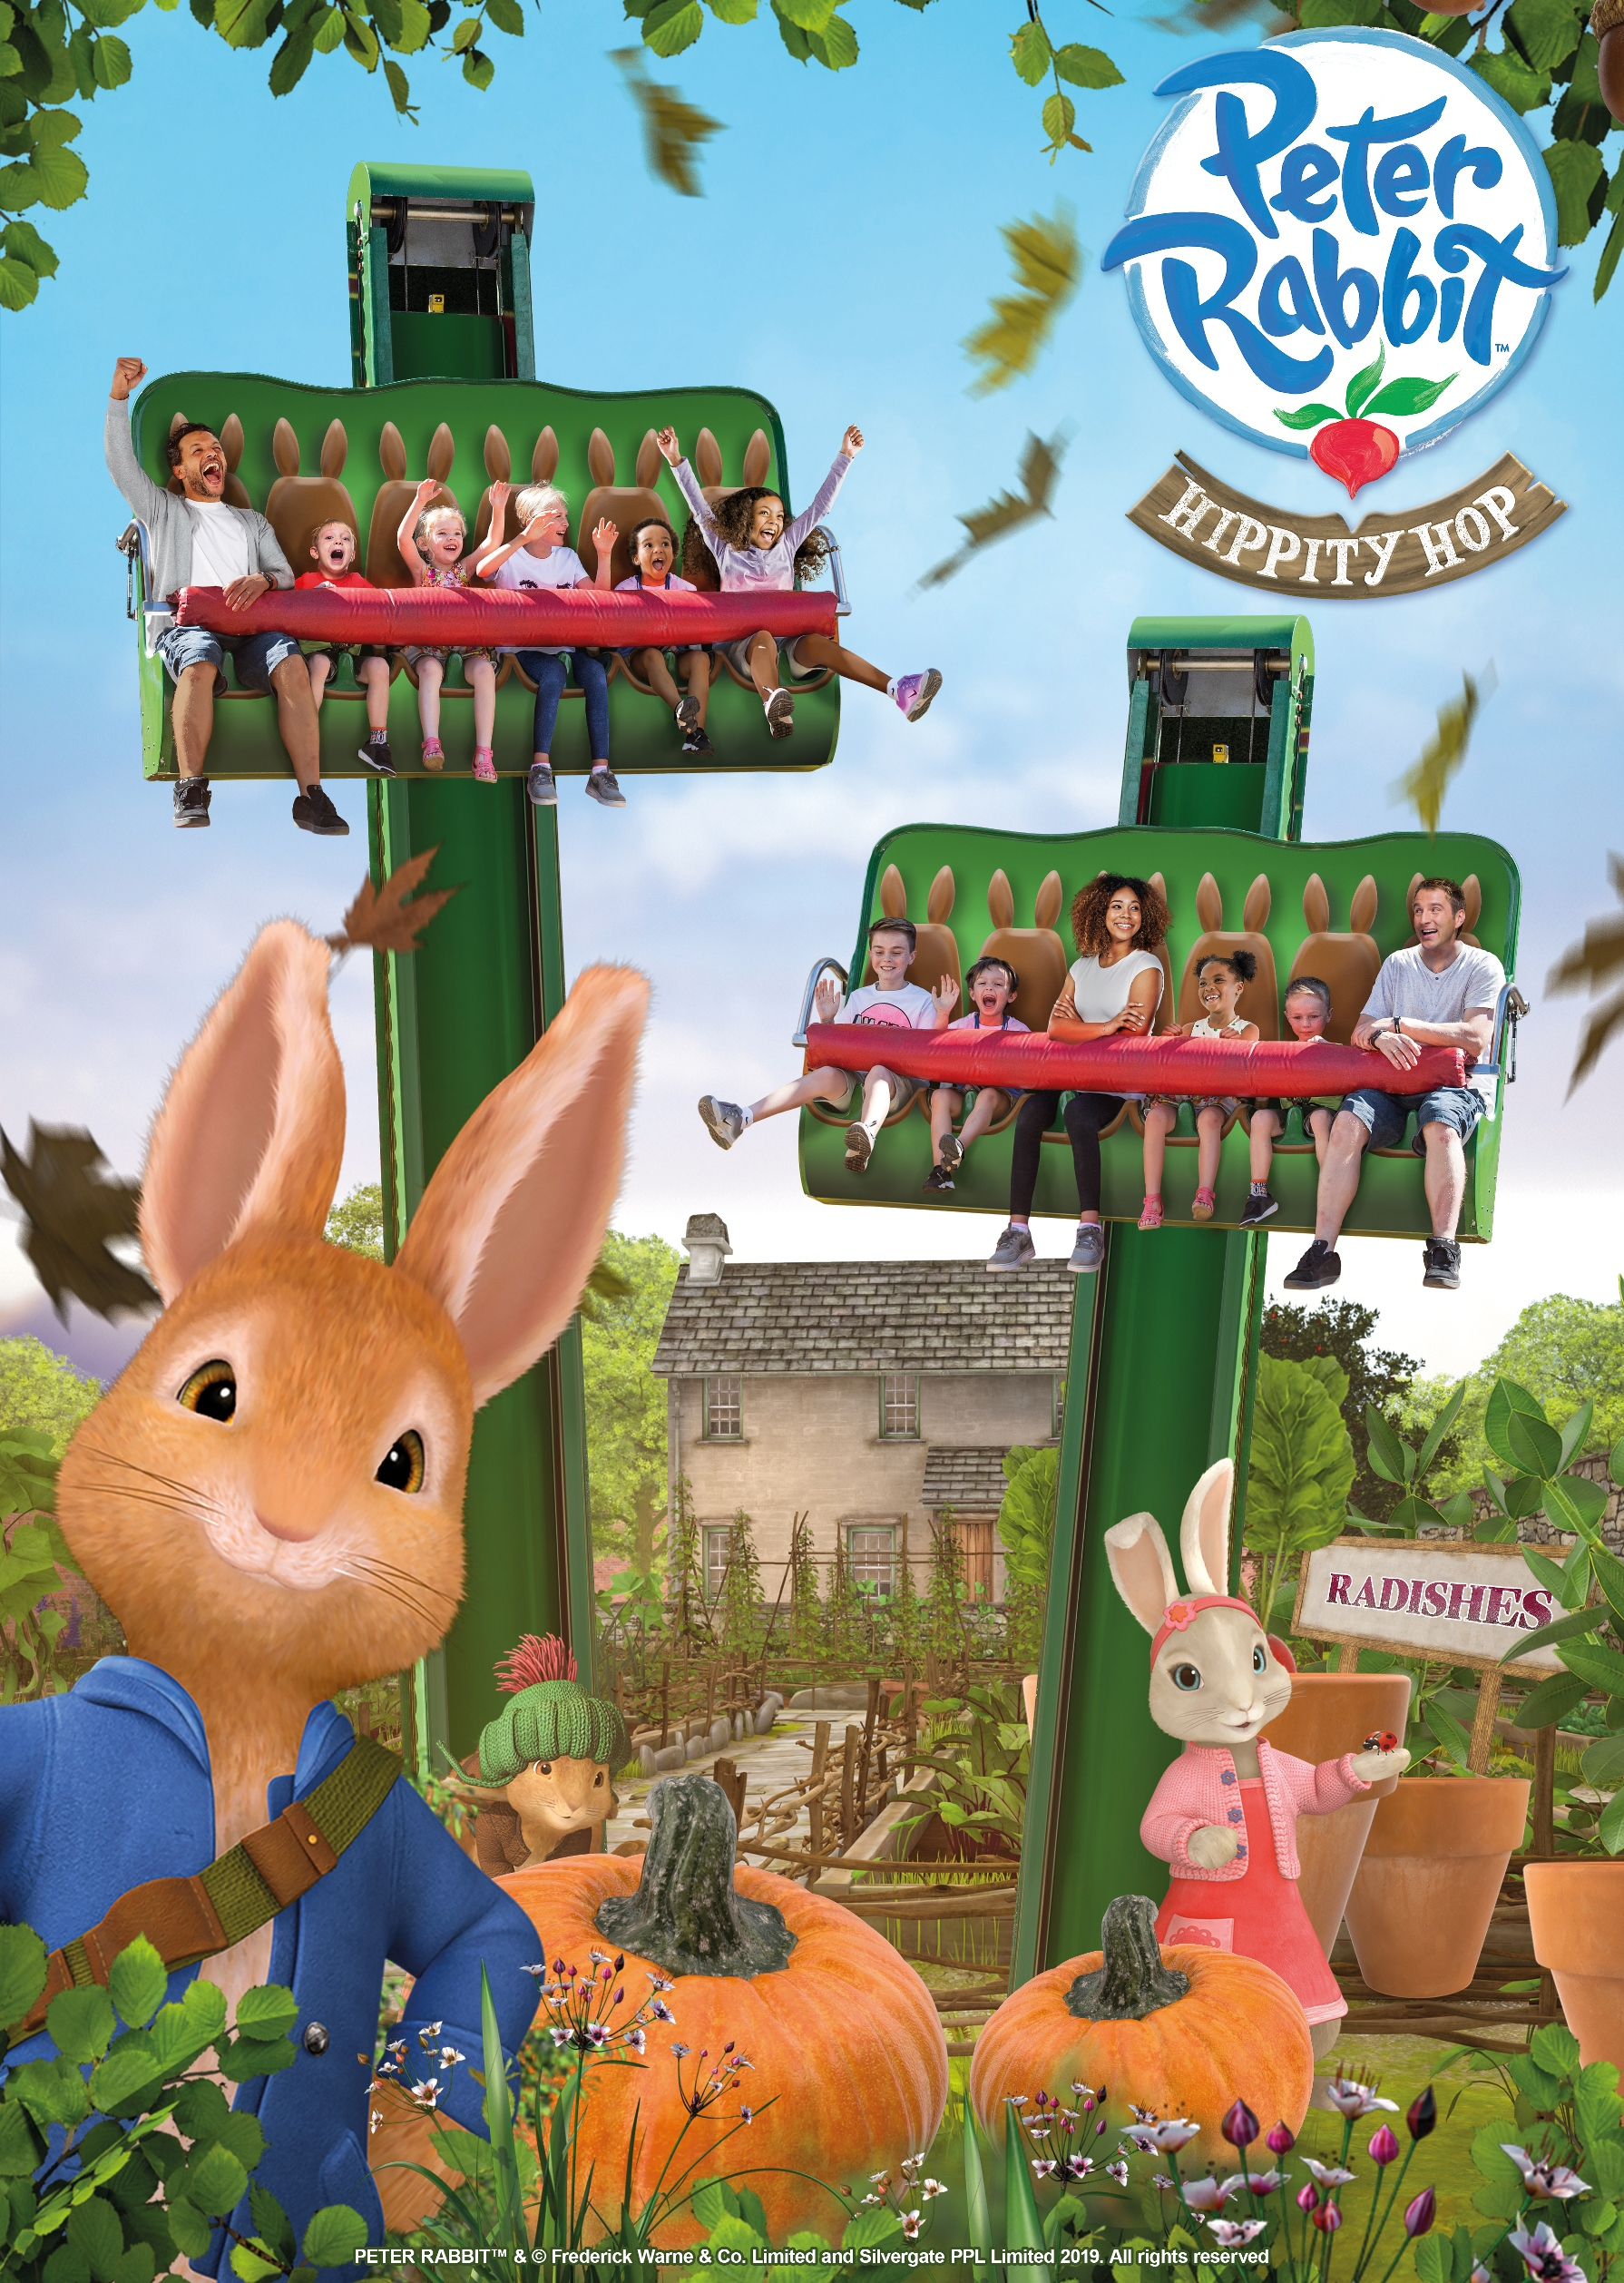 The Peter Rabbit Hippity Hop ride is coming to Alton Towers Resort in 2019